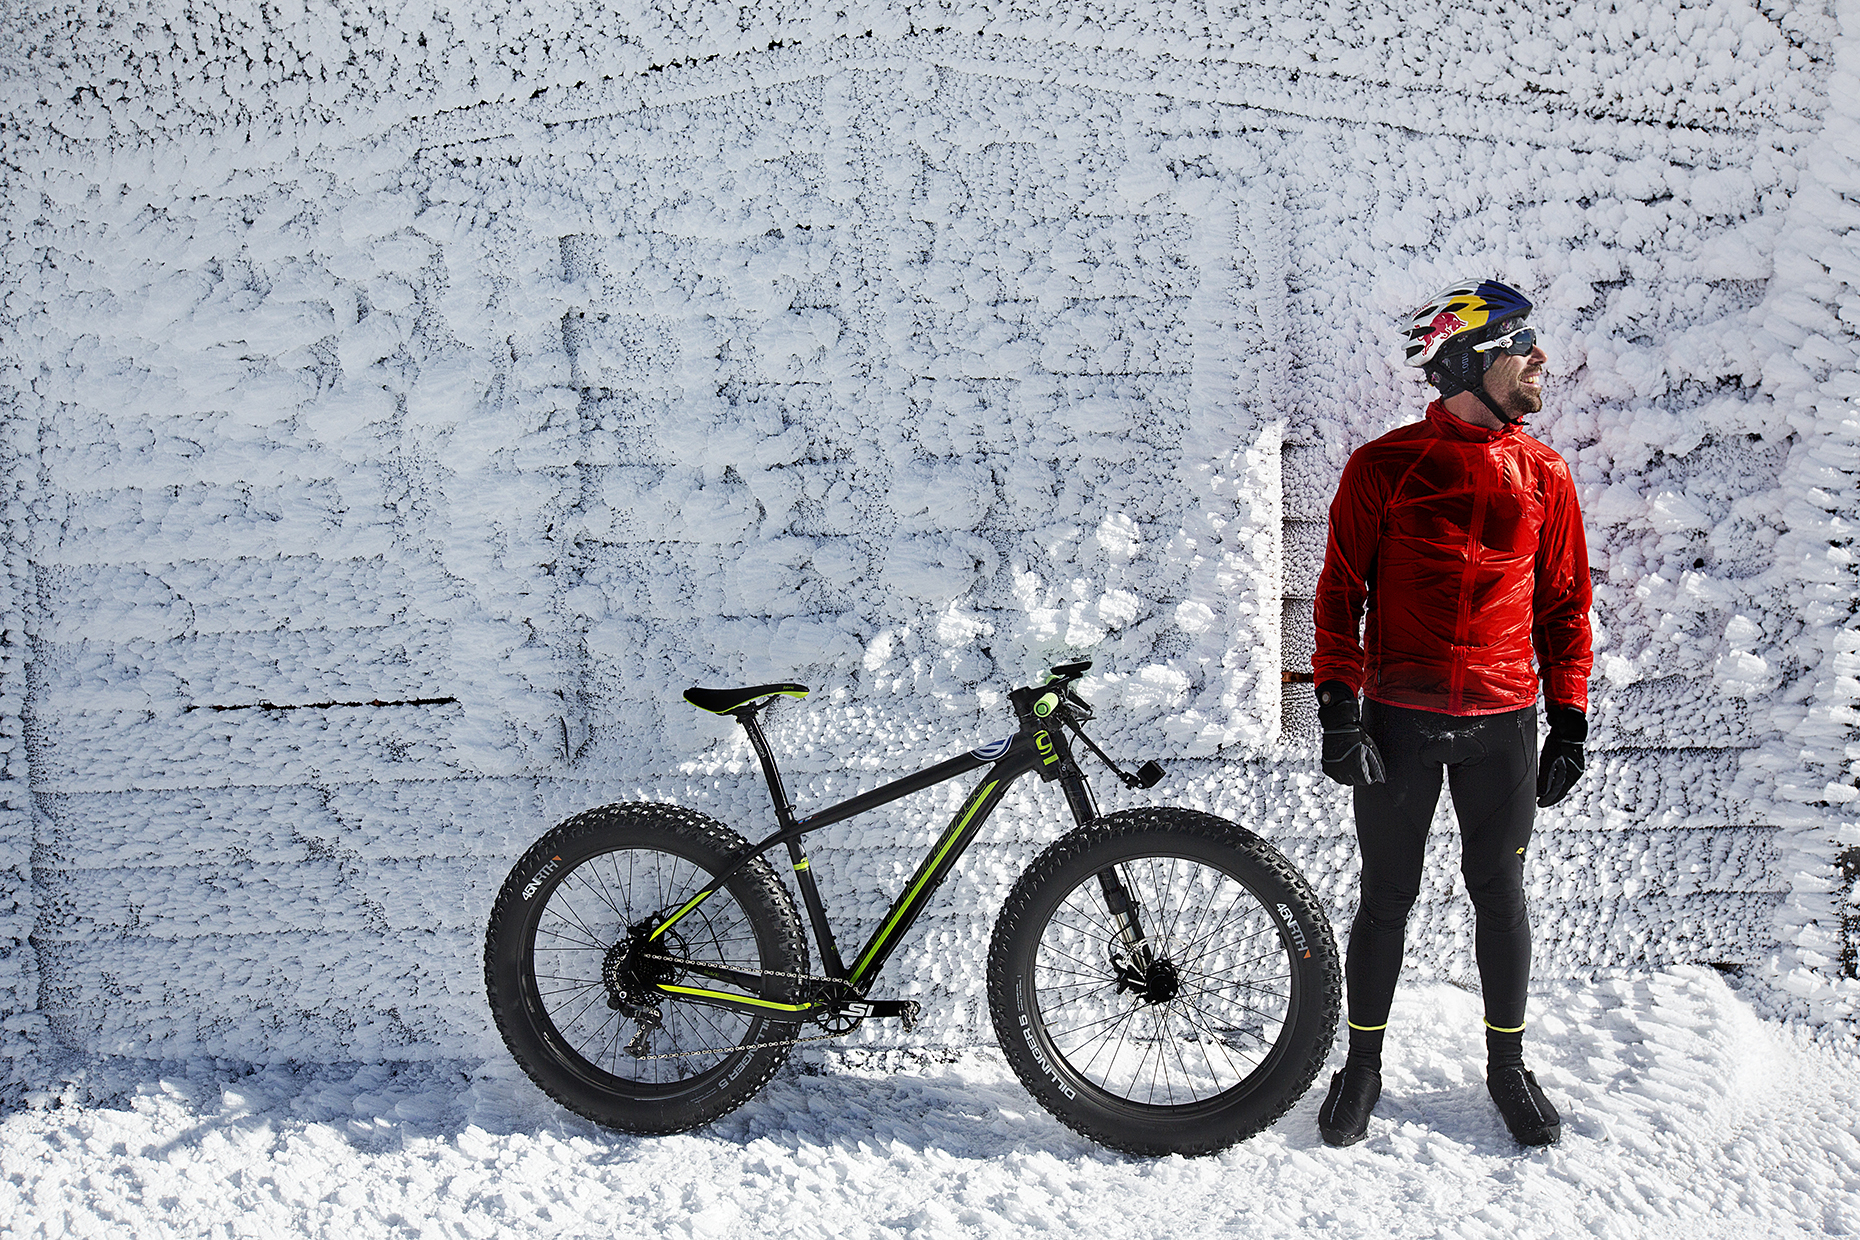 Tim Johnson fat tire bikes Mount Washington in New Hampshire  by Boston based commercial lifestyle photographer Brian Nevins